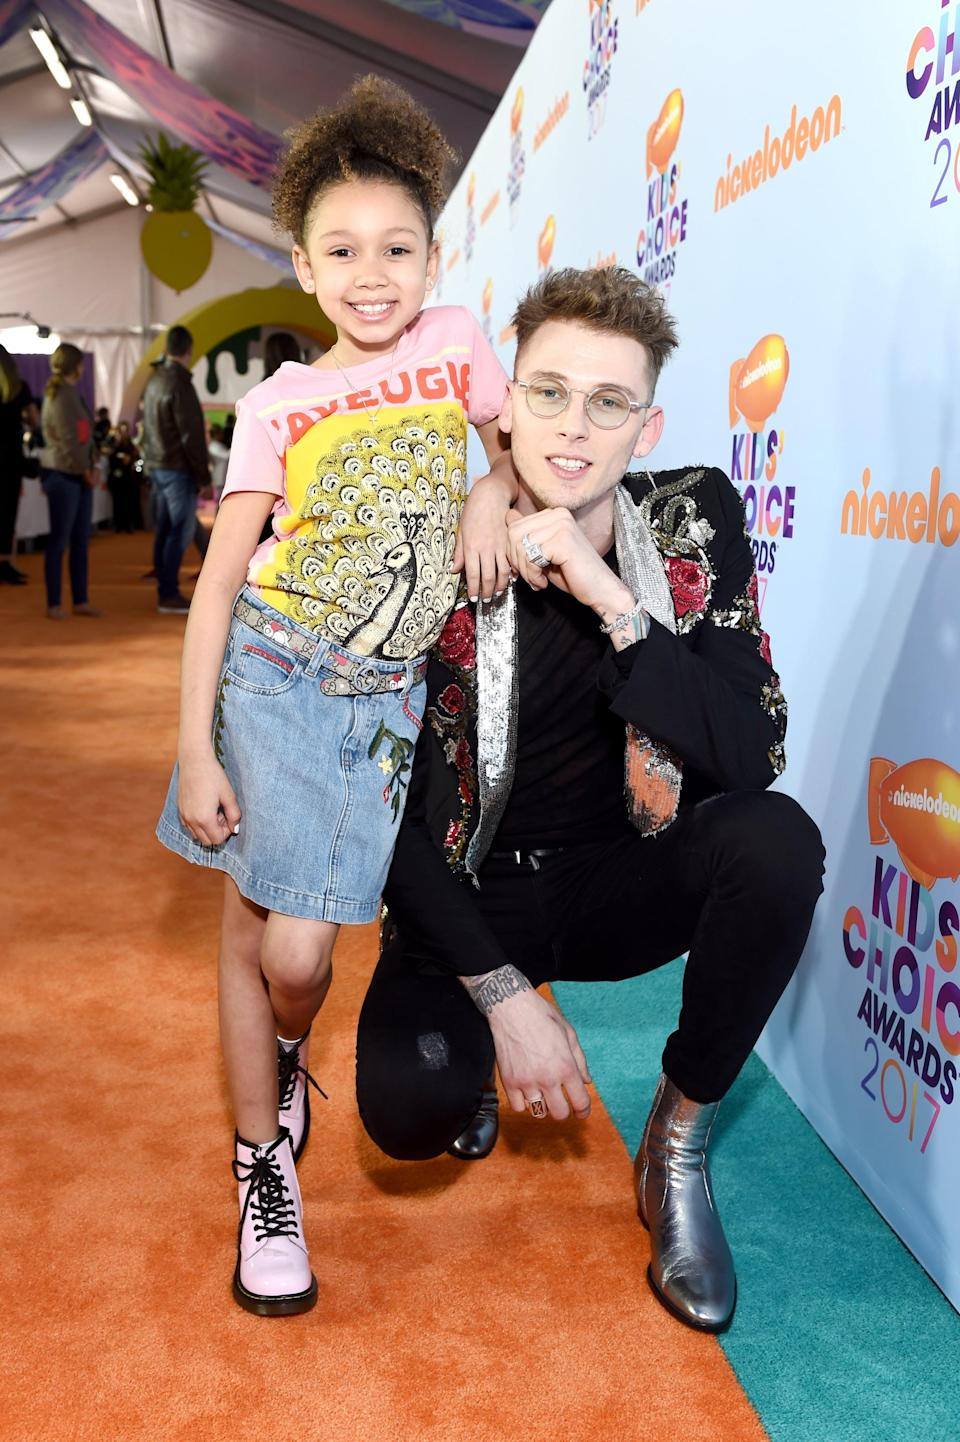 <p>Very little is known about Machine Gun Kelly's relationship with Emma, who doesn't appear to have any social media accounts. However, MGK has shared a few adorable red carpet moments with their daughter, Casie (pictured above).</p>